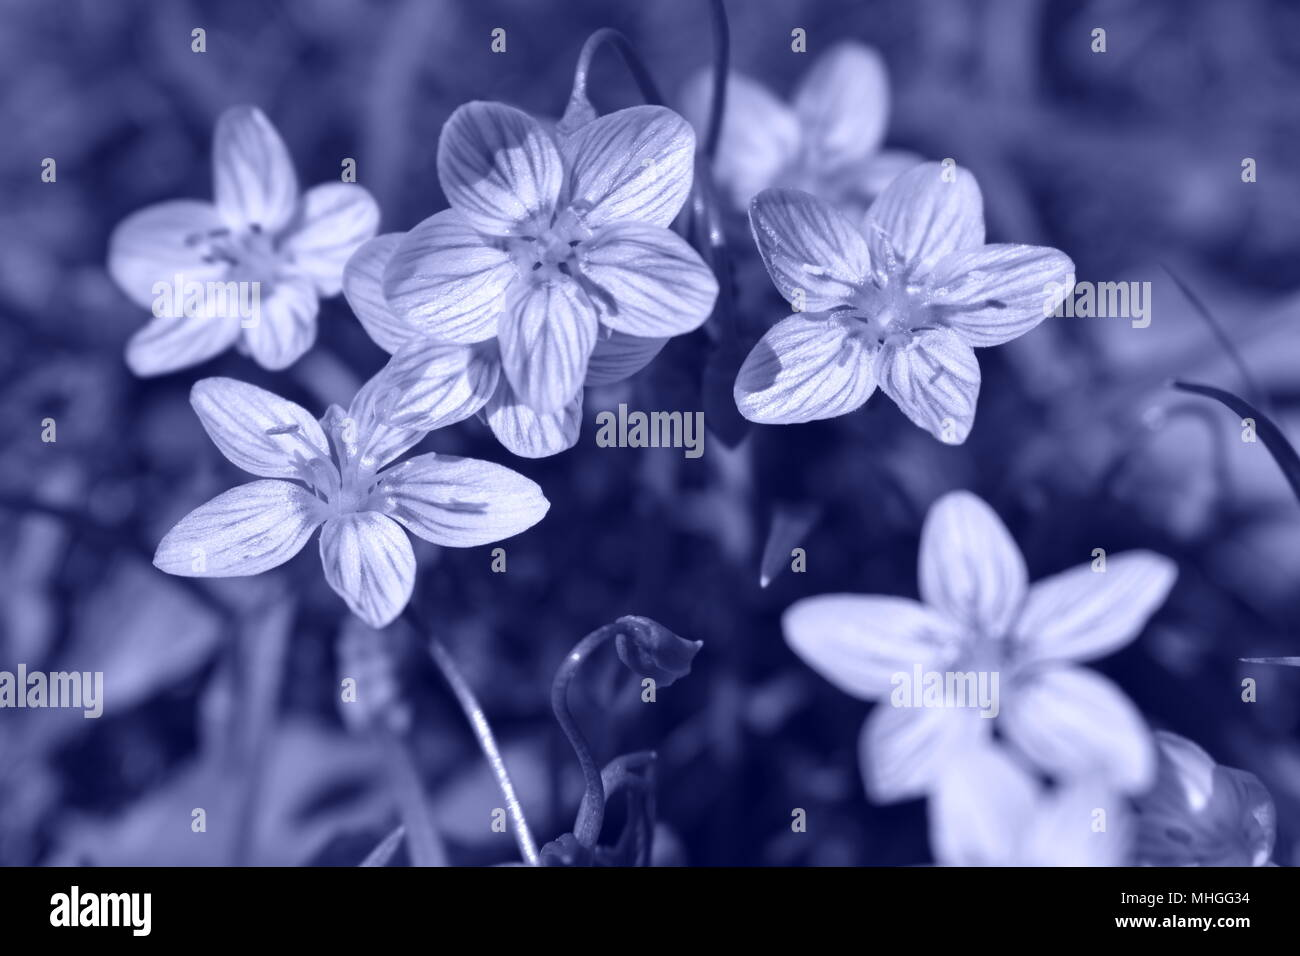 Dainty purple wildflowers, commonly called Eastern Spring Beauty, growing in a lawn in the early Springtime.  Claytonia Virginia. Black & white image. Stock Photo